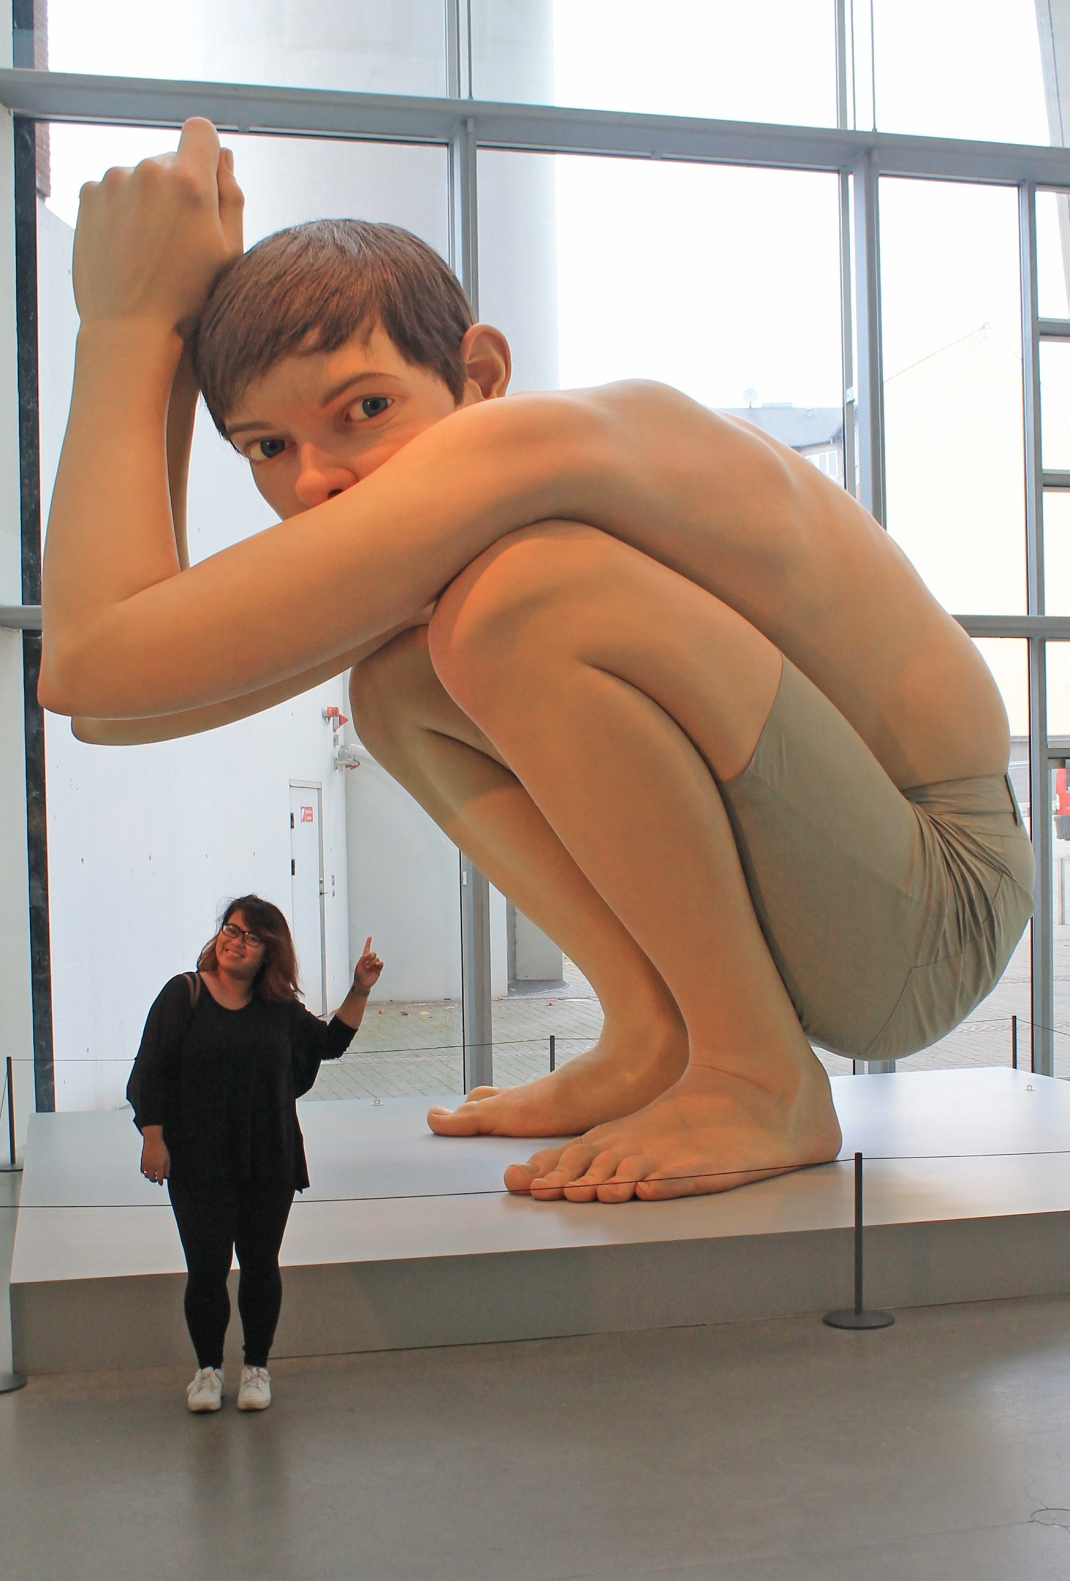 Boy by Ron Mueck Mueck, an Aussie was quoted saying that had he known the boy would go to DK, he would have given him a sweater